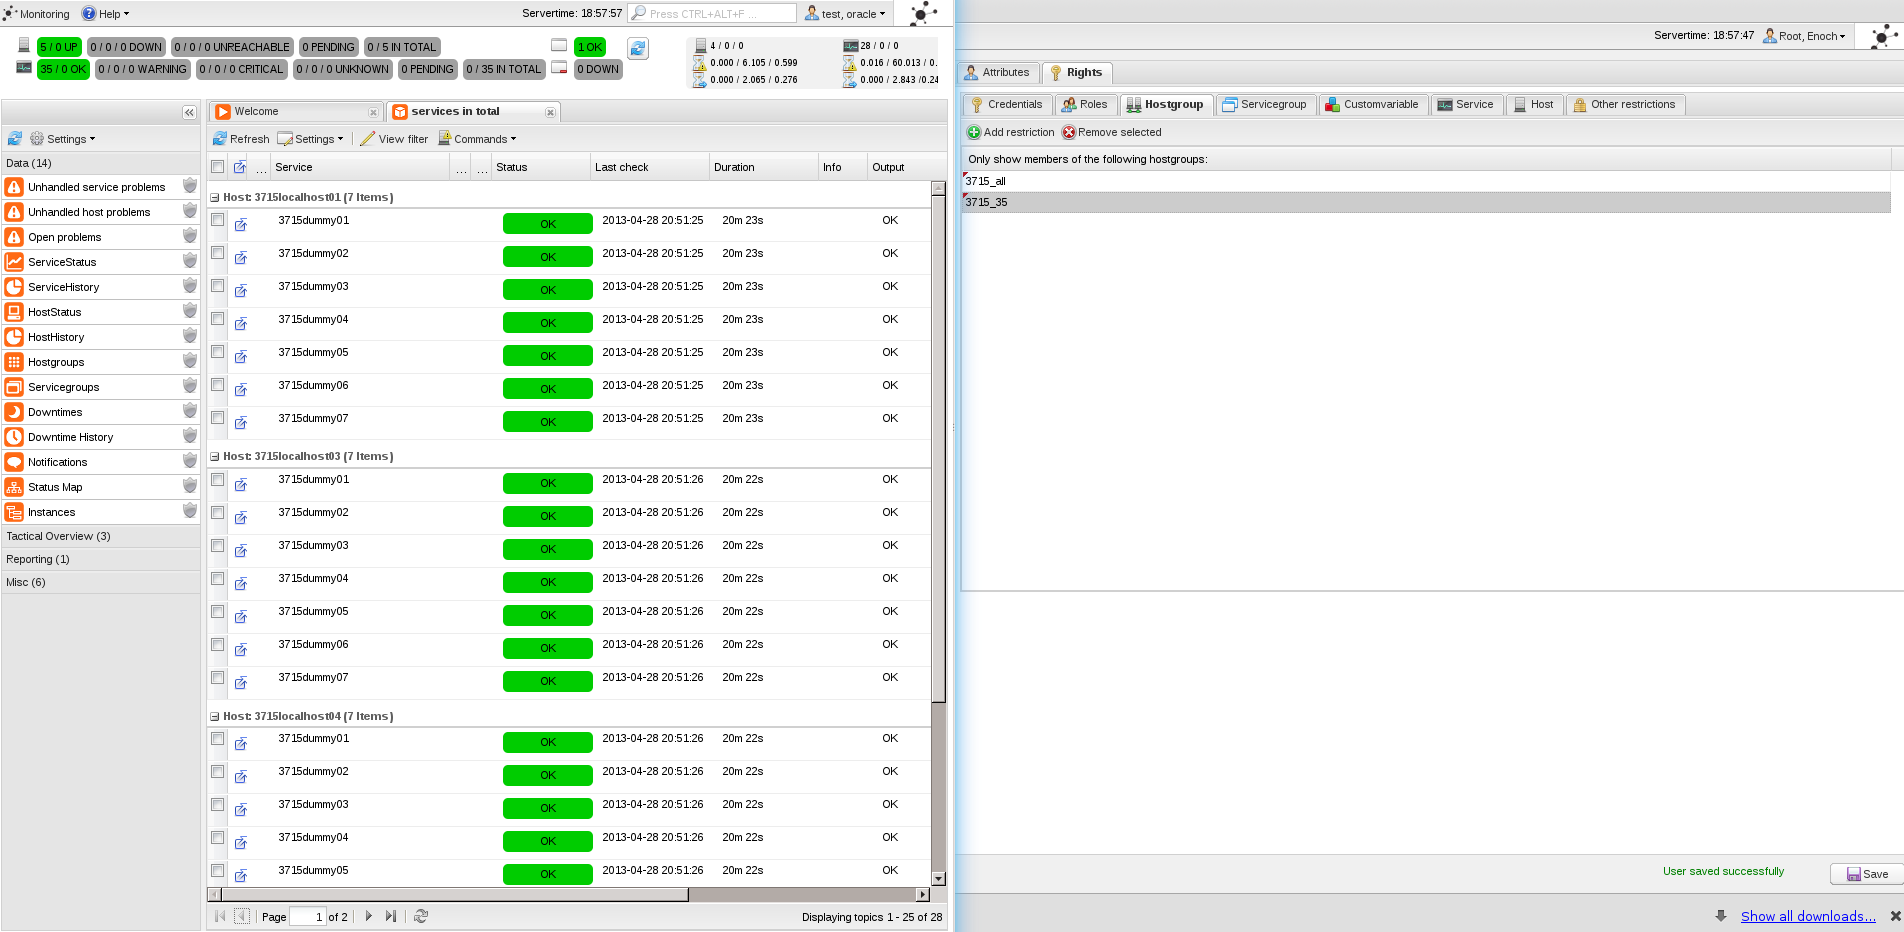 icinga_web_1.9_oracle_permissions_hg_overlapping_01.png